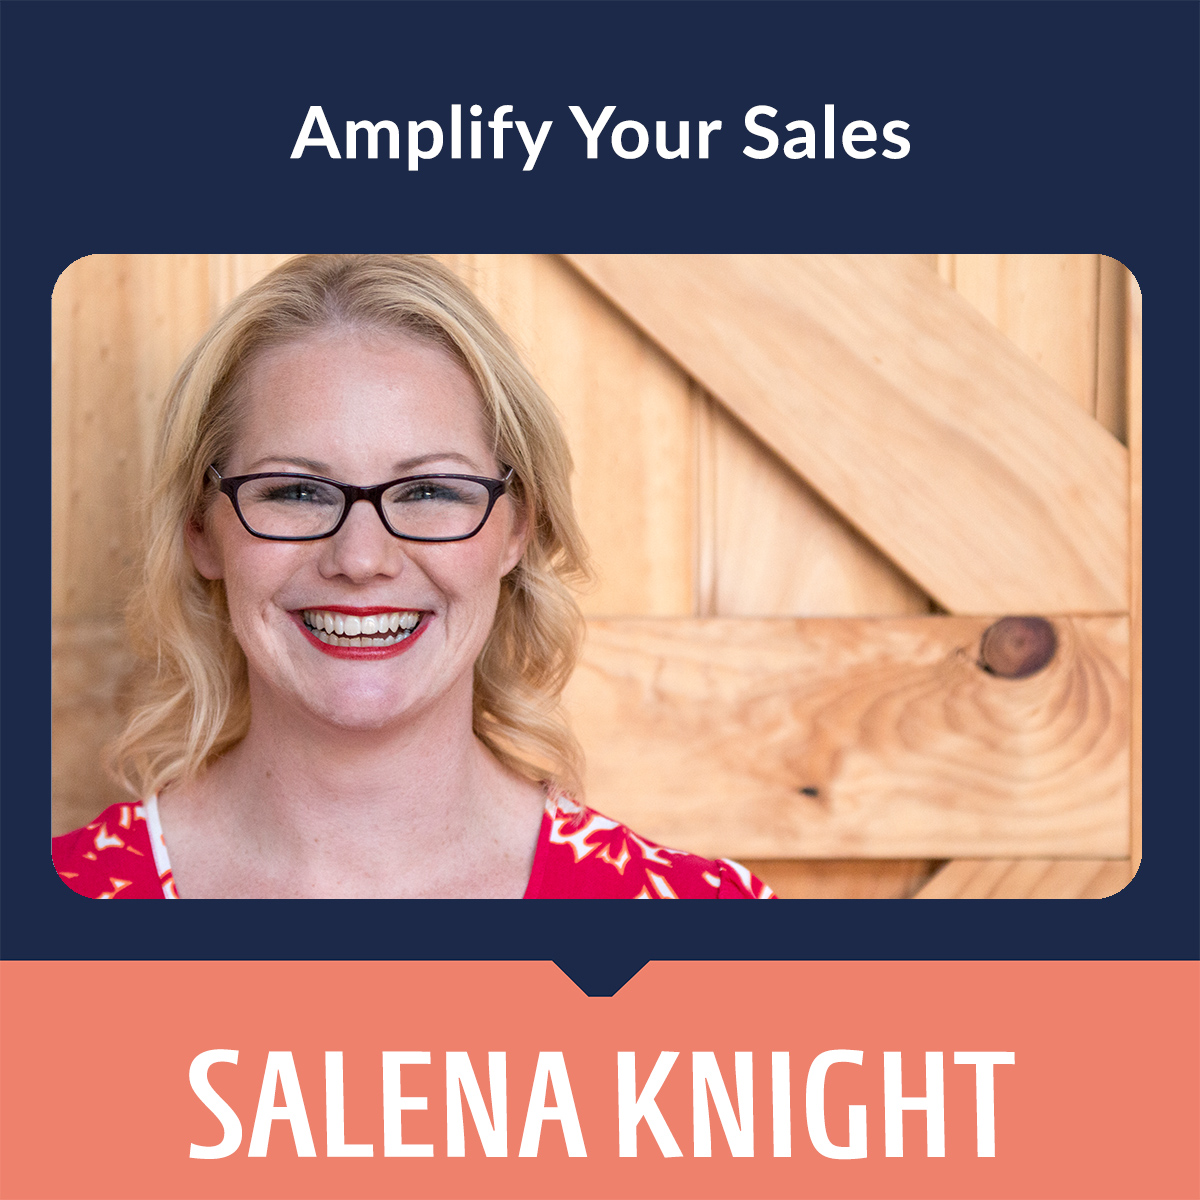 Amplify_Your_Sales_sqr